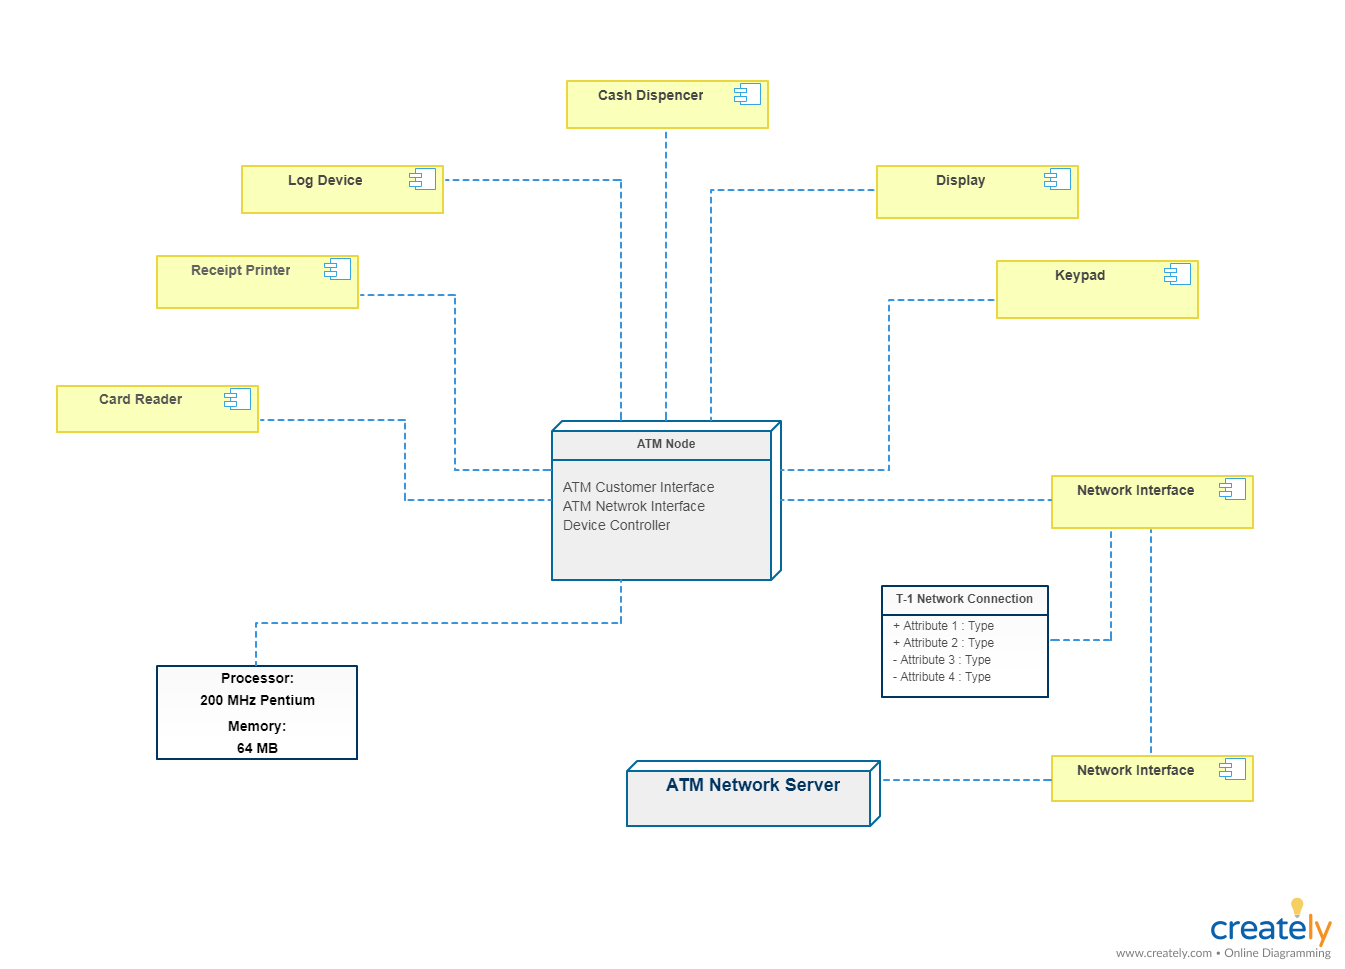 Deployment Diagram for ATM System